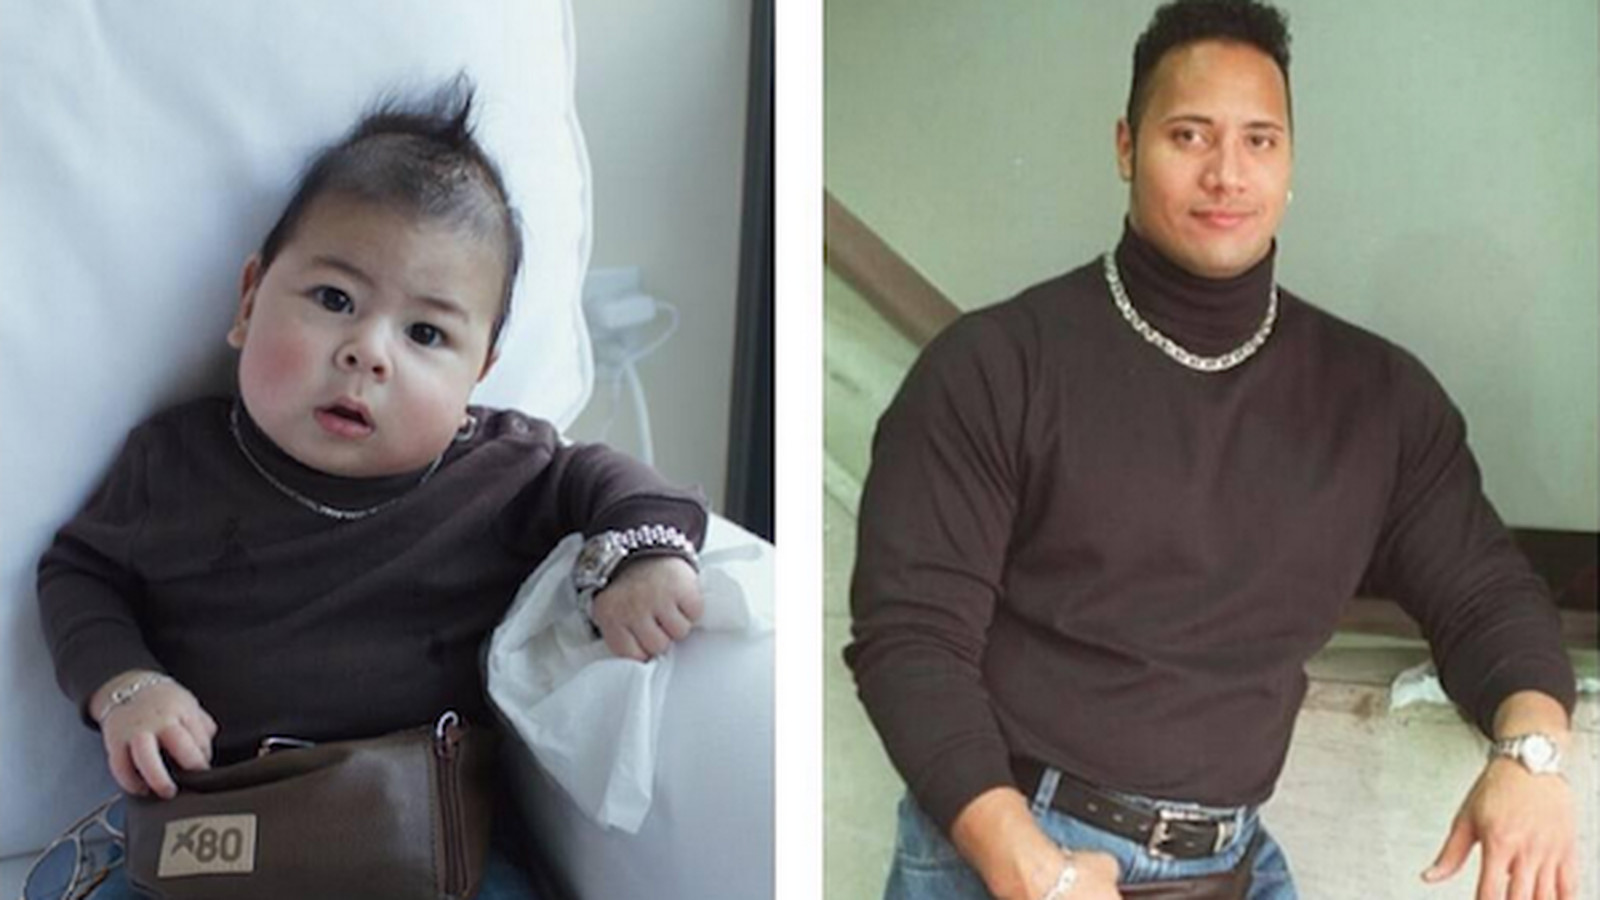 Adorable Baby Dresses Up As The Rock In The 1990s